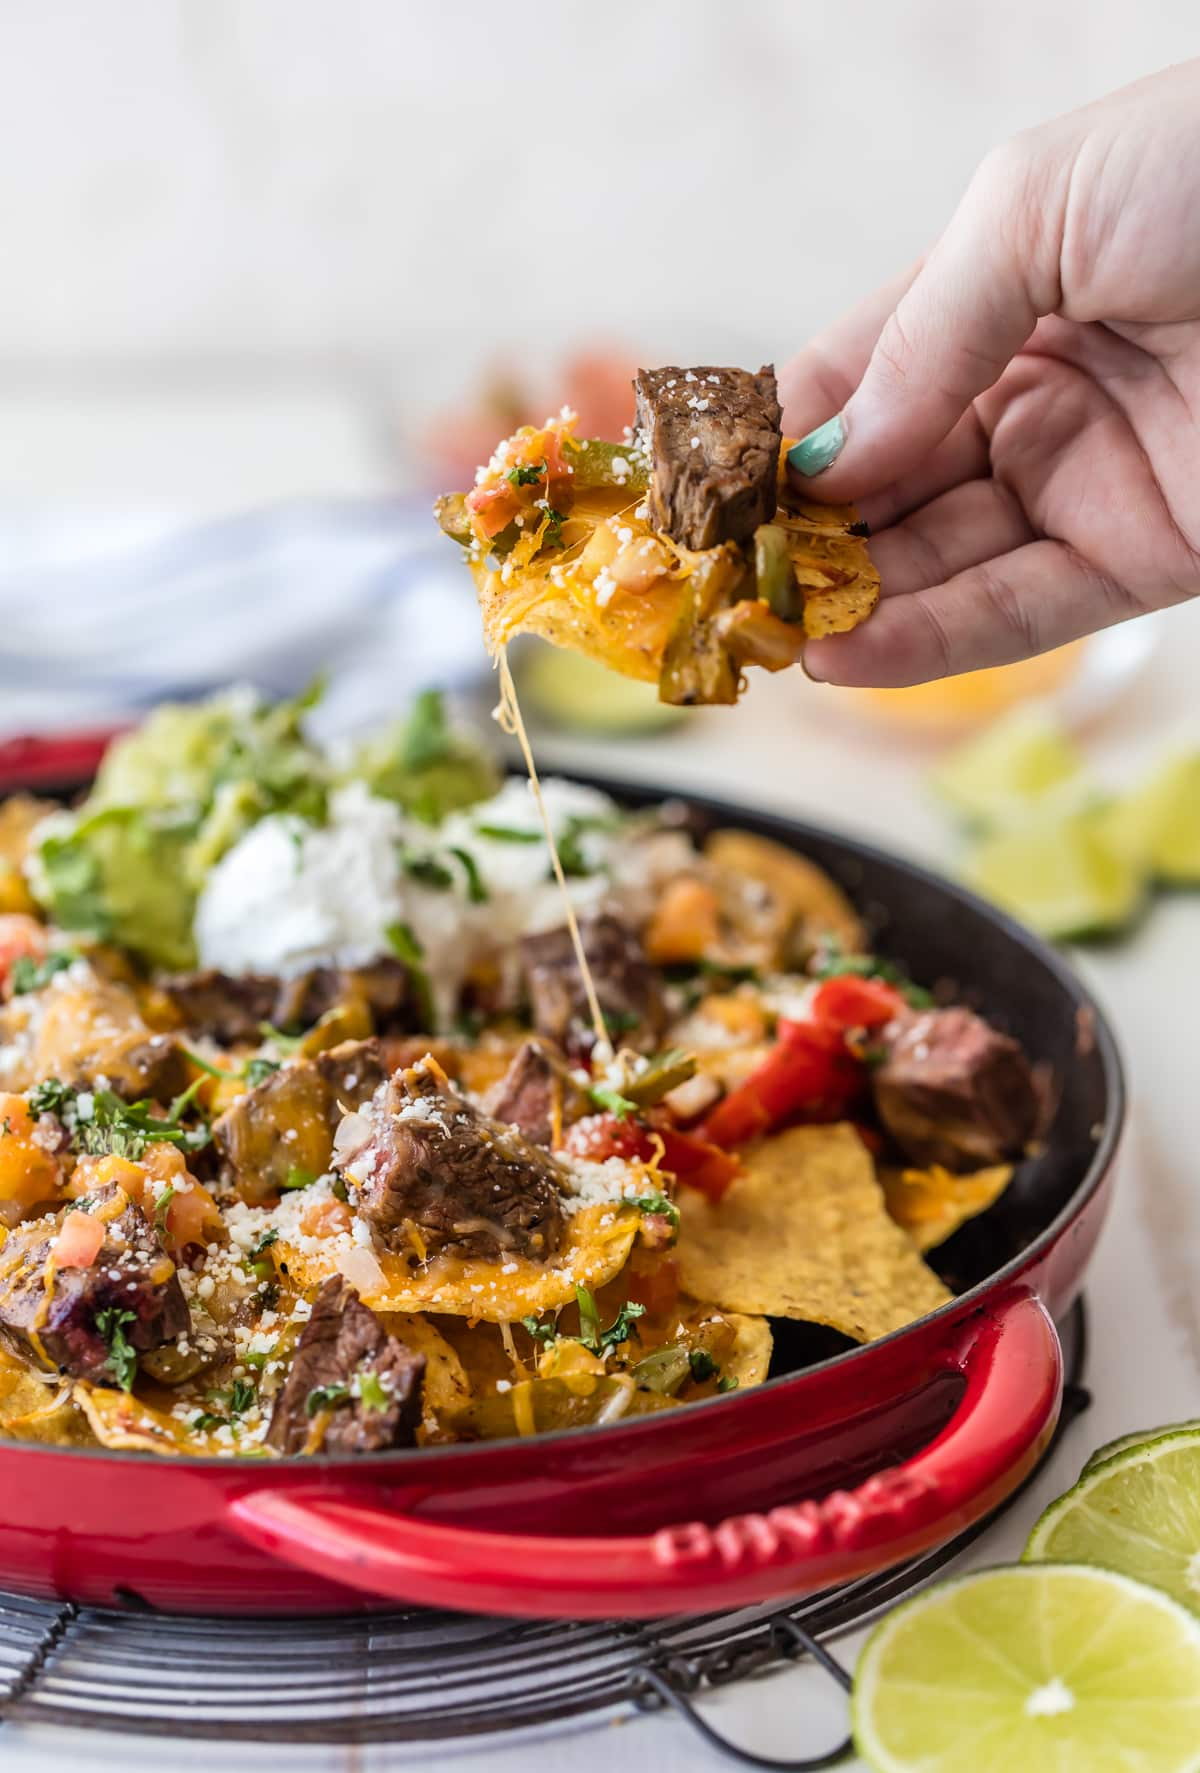 A skillet filled with nachos, topped with steak, cheese, peppers, and more